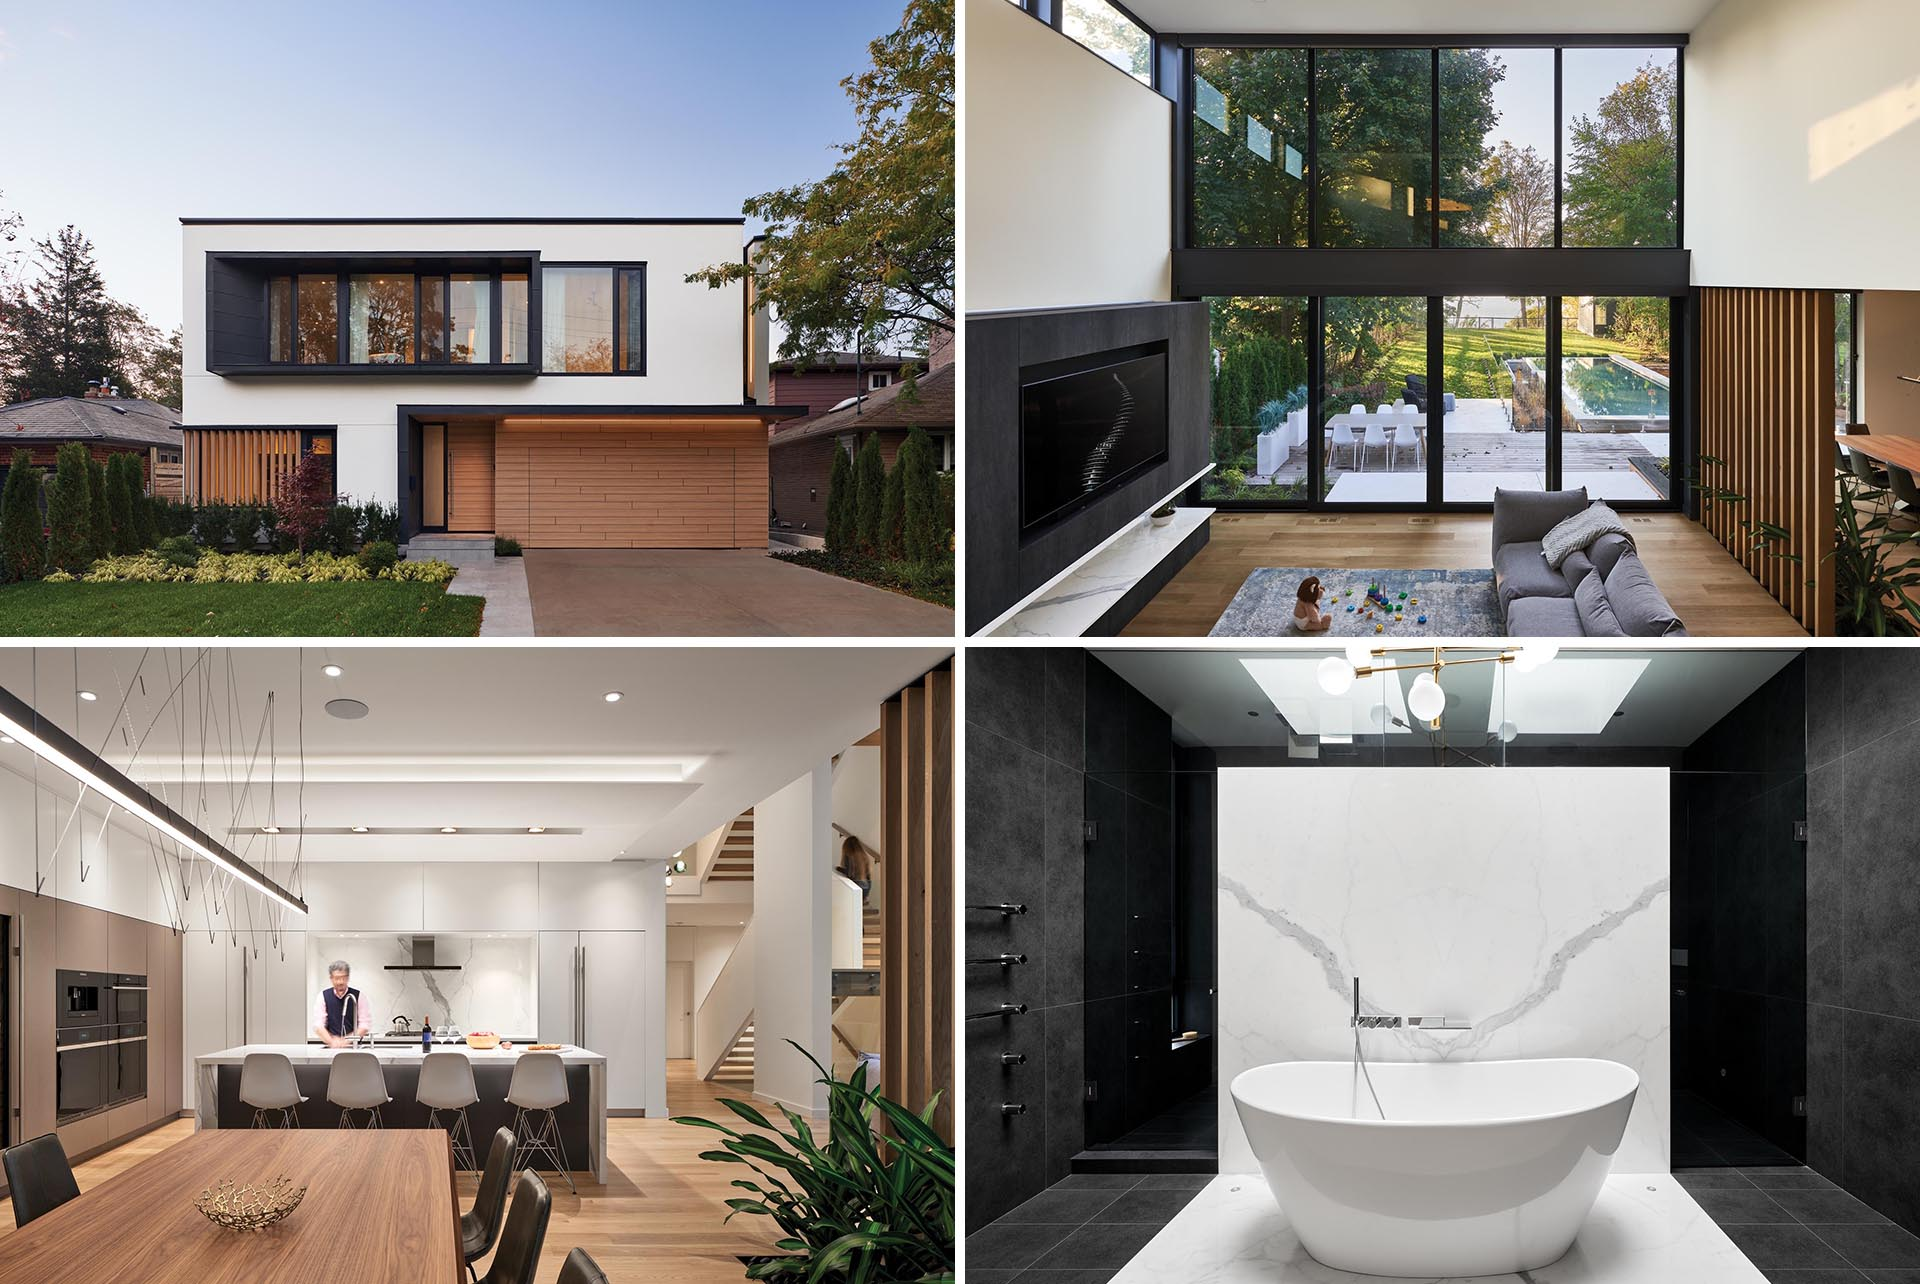 A modern house with a double-height ceiling, a bright interior, and a dramatic master bathroom.